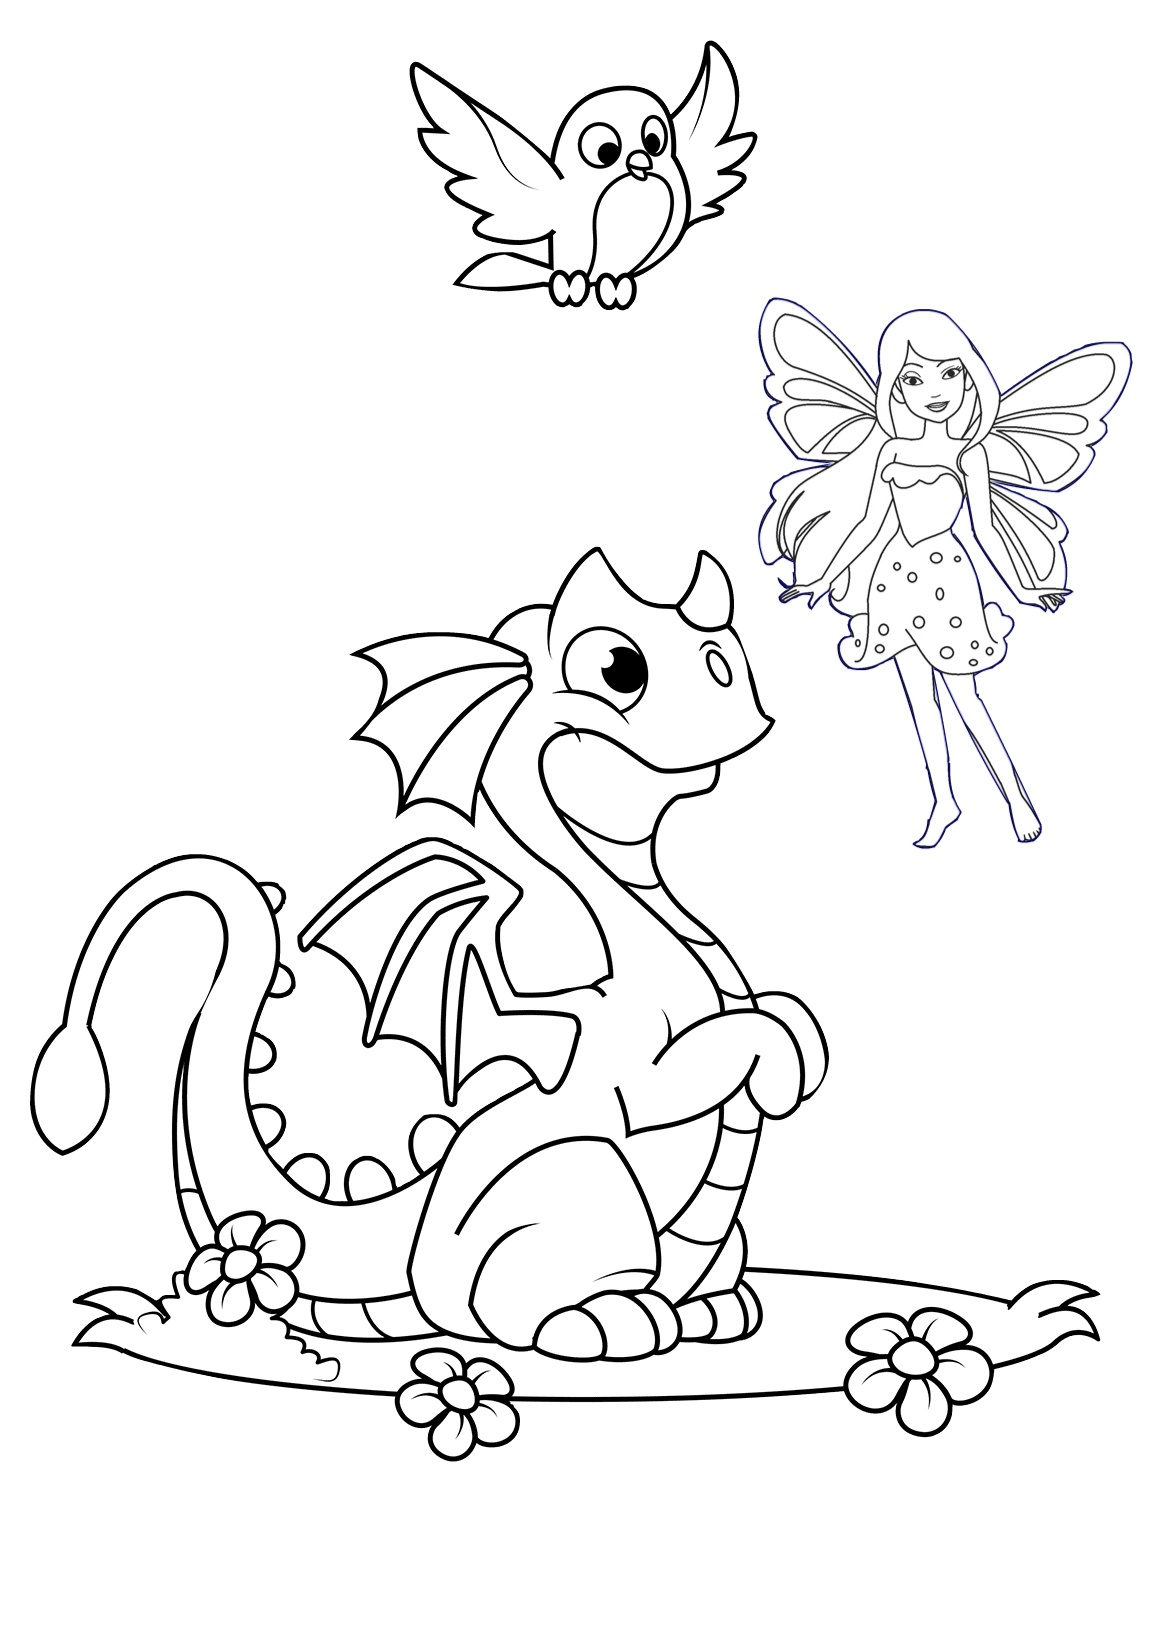 Cute Dragon with a Fairy Printable Coloring Page